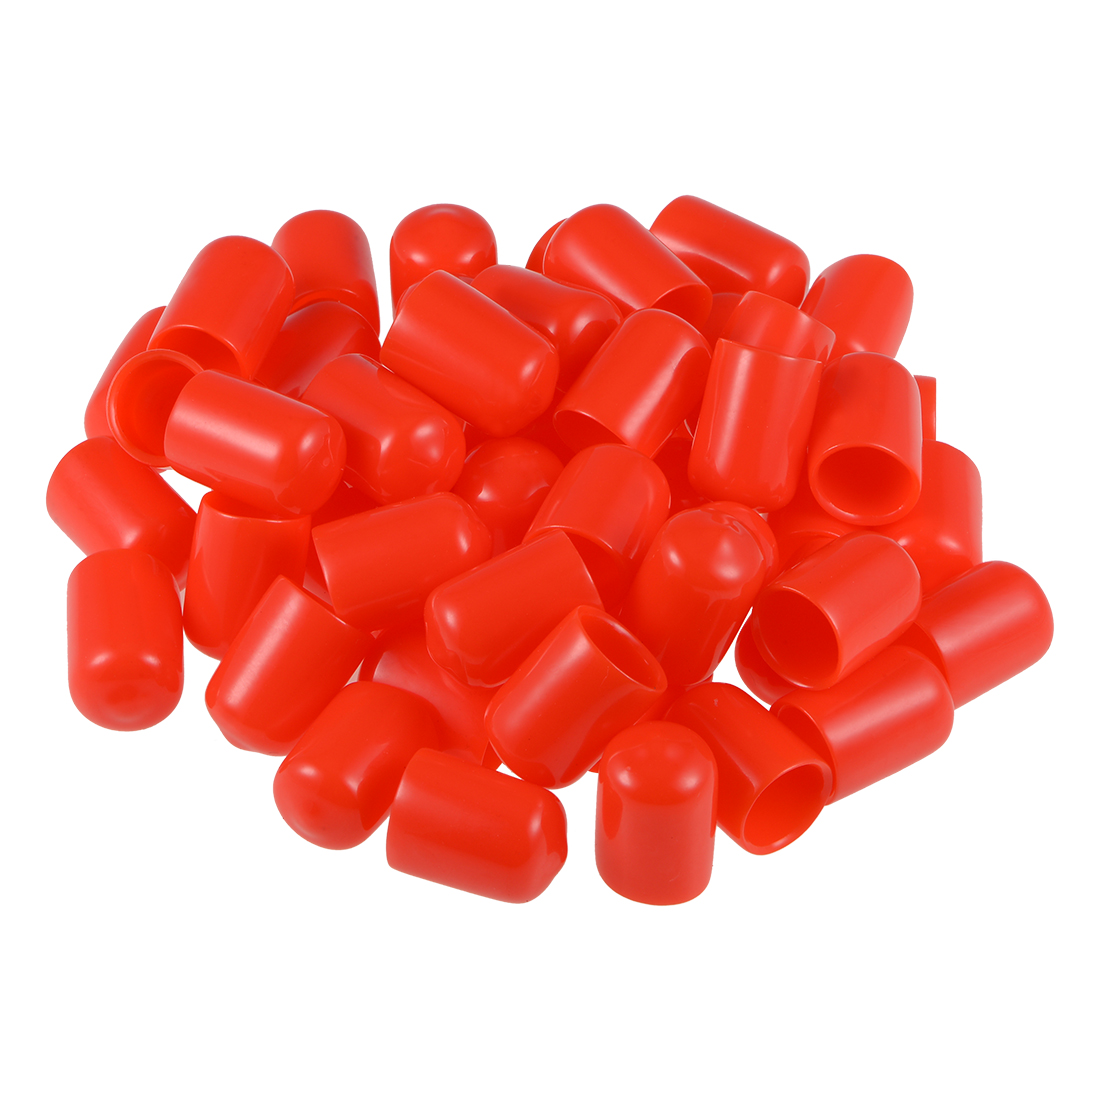 Screw Thread Protector, 12mm ID Round End Cap Cover Red Tube Caps 50pcs